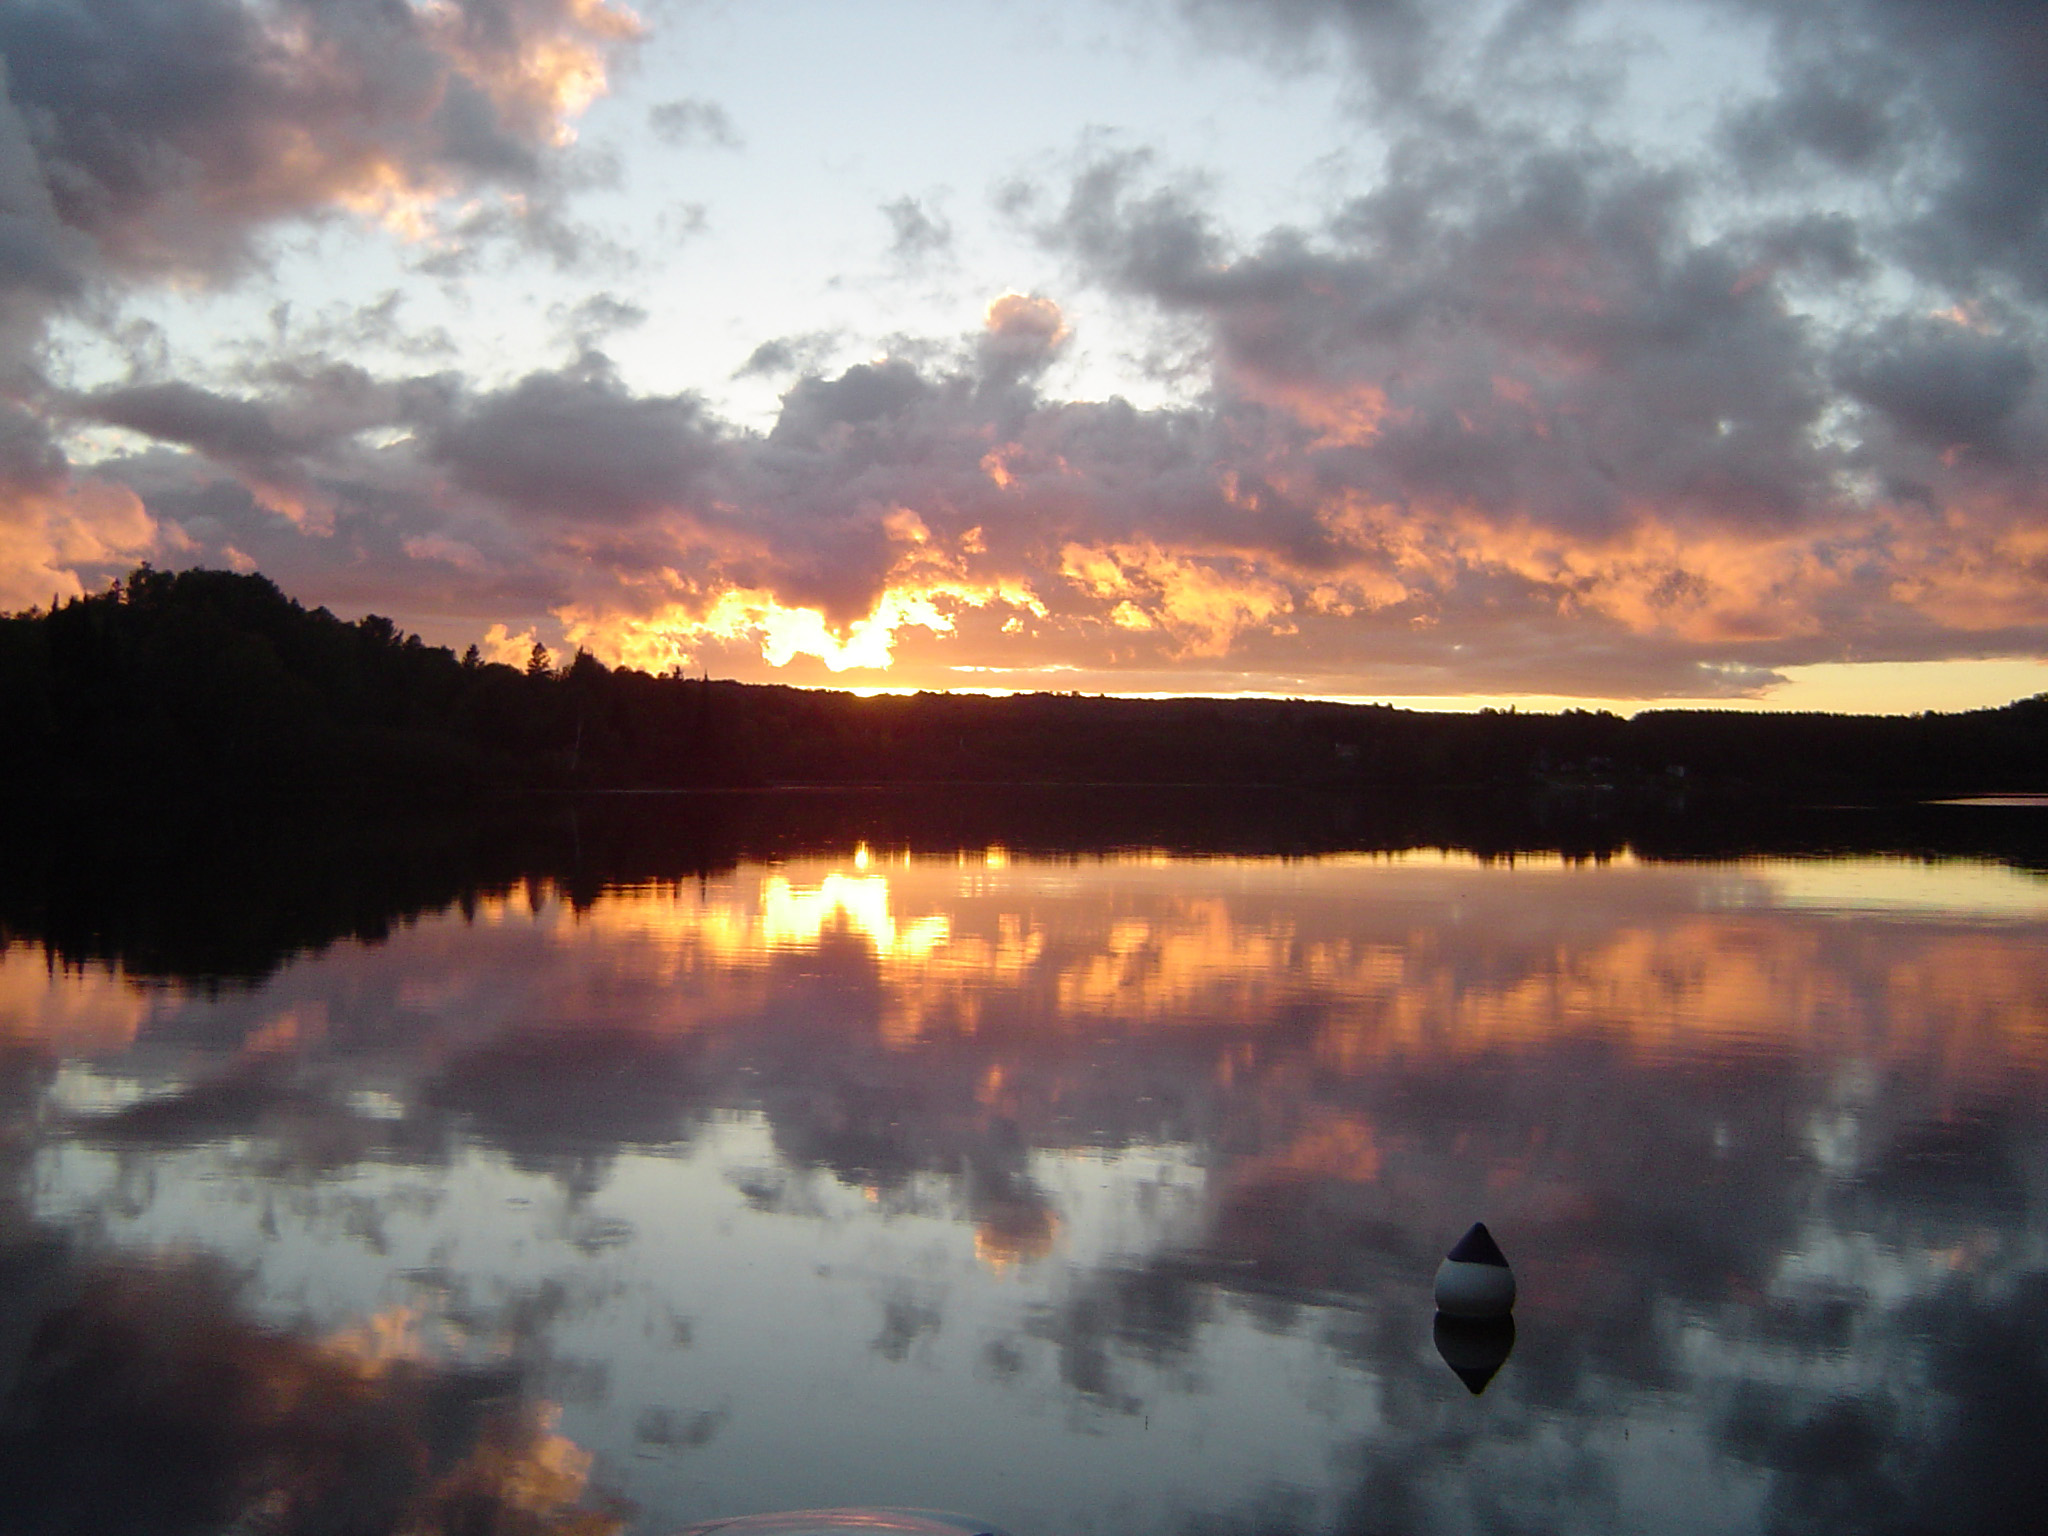 Beautiful sunset reflected in one of the numerous lakes in the Algonquin Provincial Park in Canada with a fiery sky and delicate pink clouds